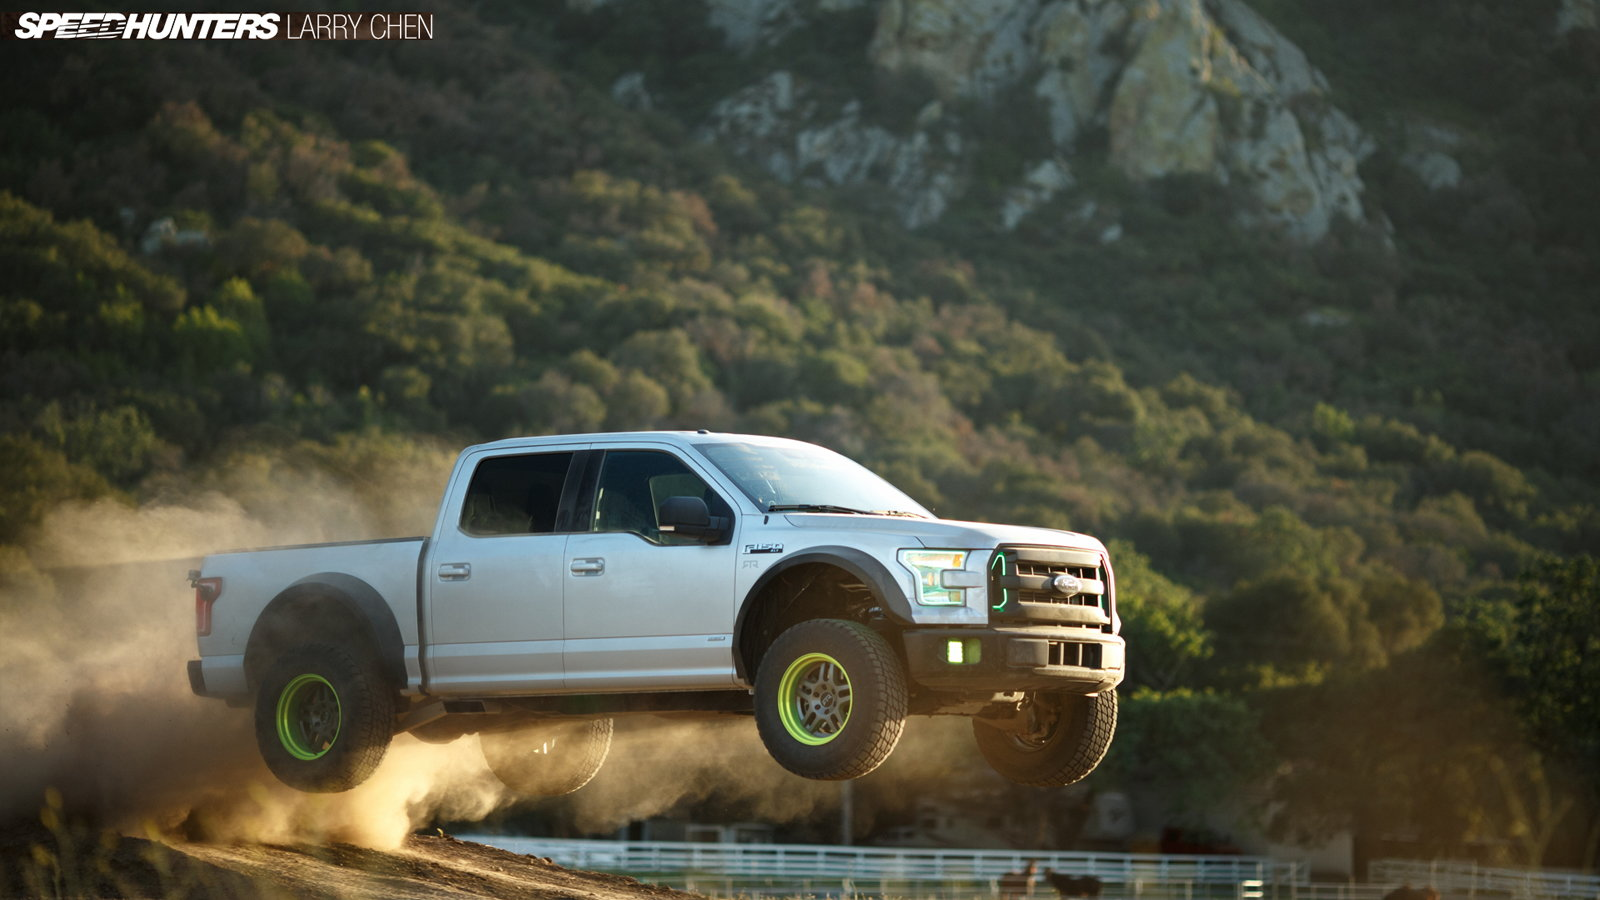 This F-150 is an All-Around Joy Machine